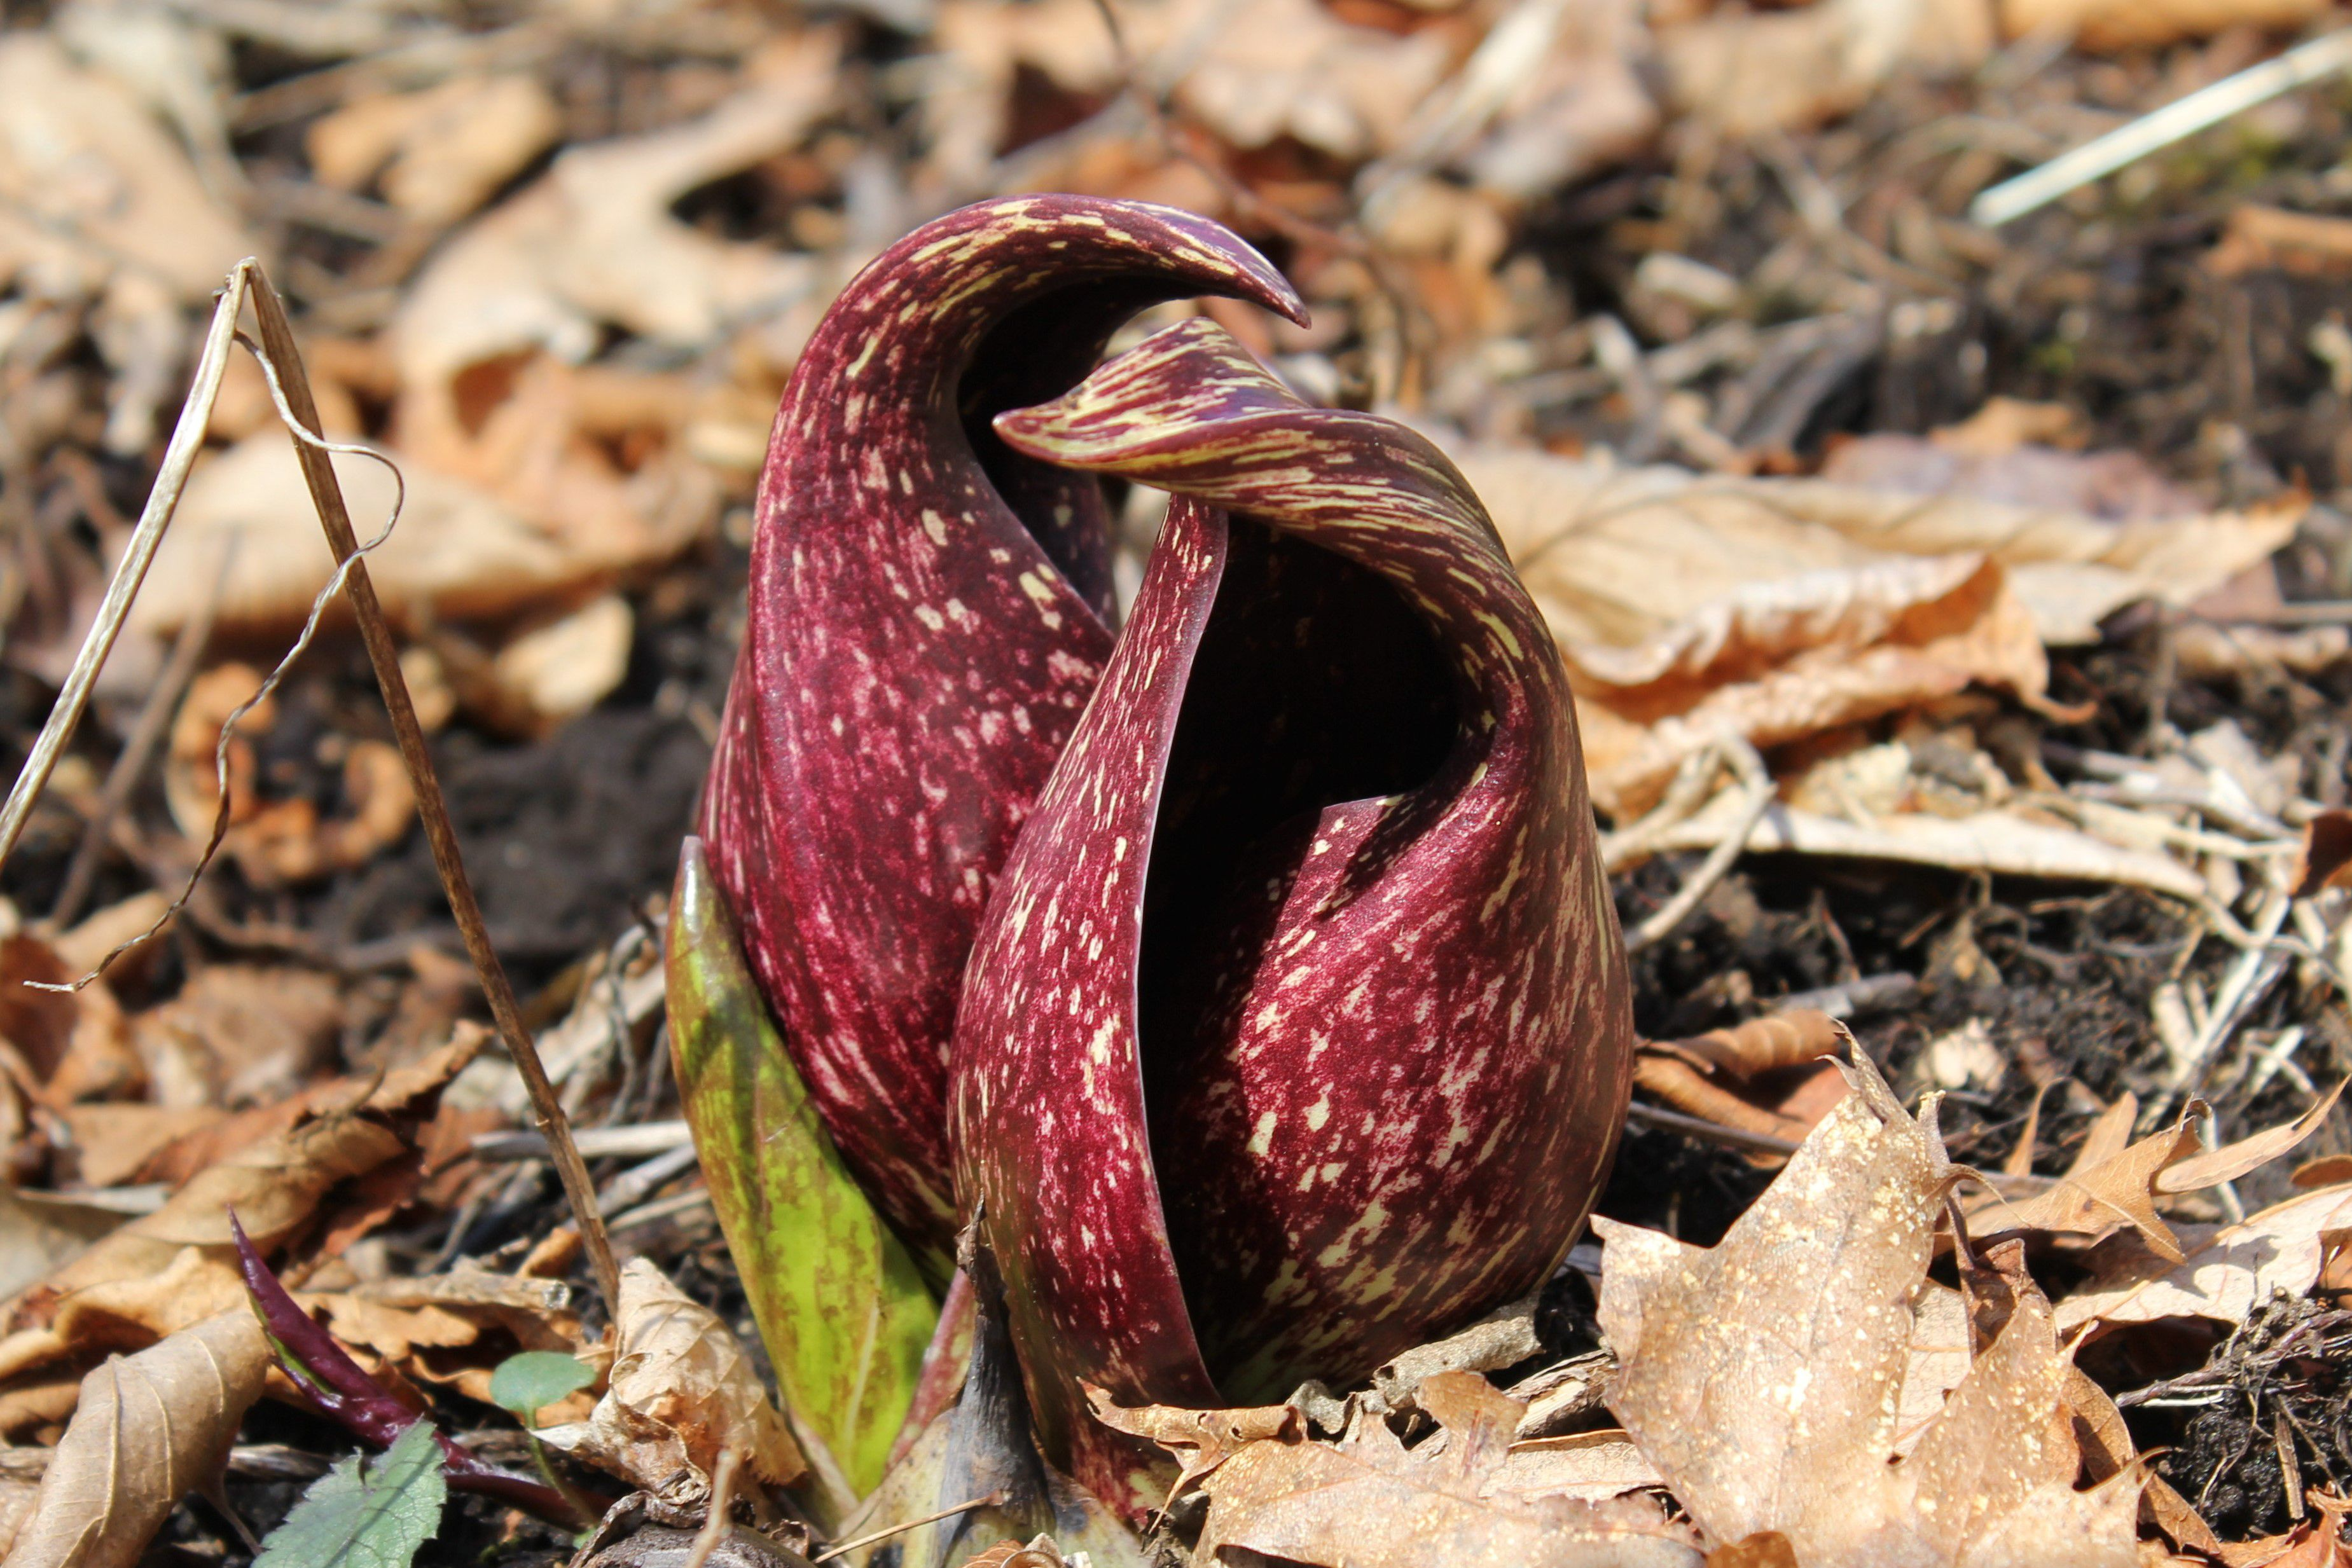 Two skunk cabbage flowers side by side, compromised of a maroon and gold hood, emerging from bare ground..